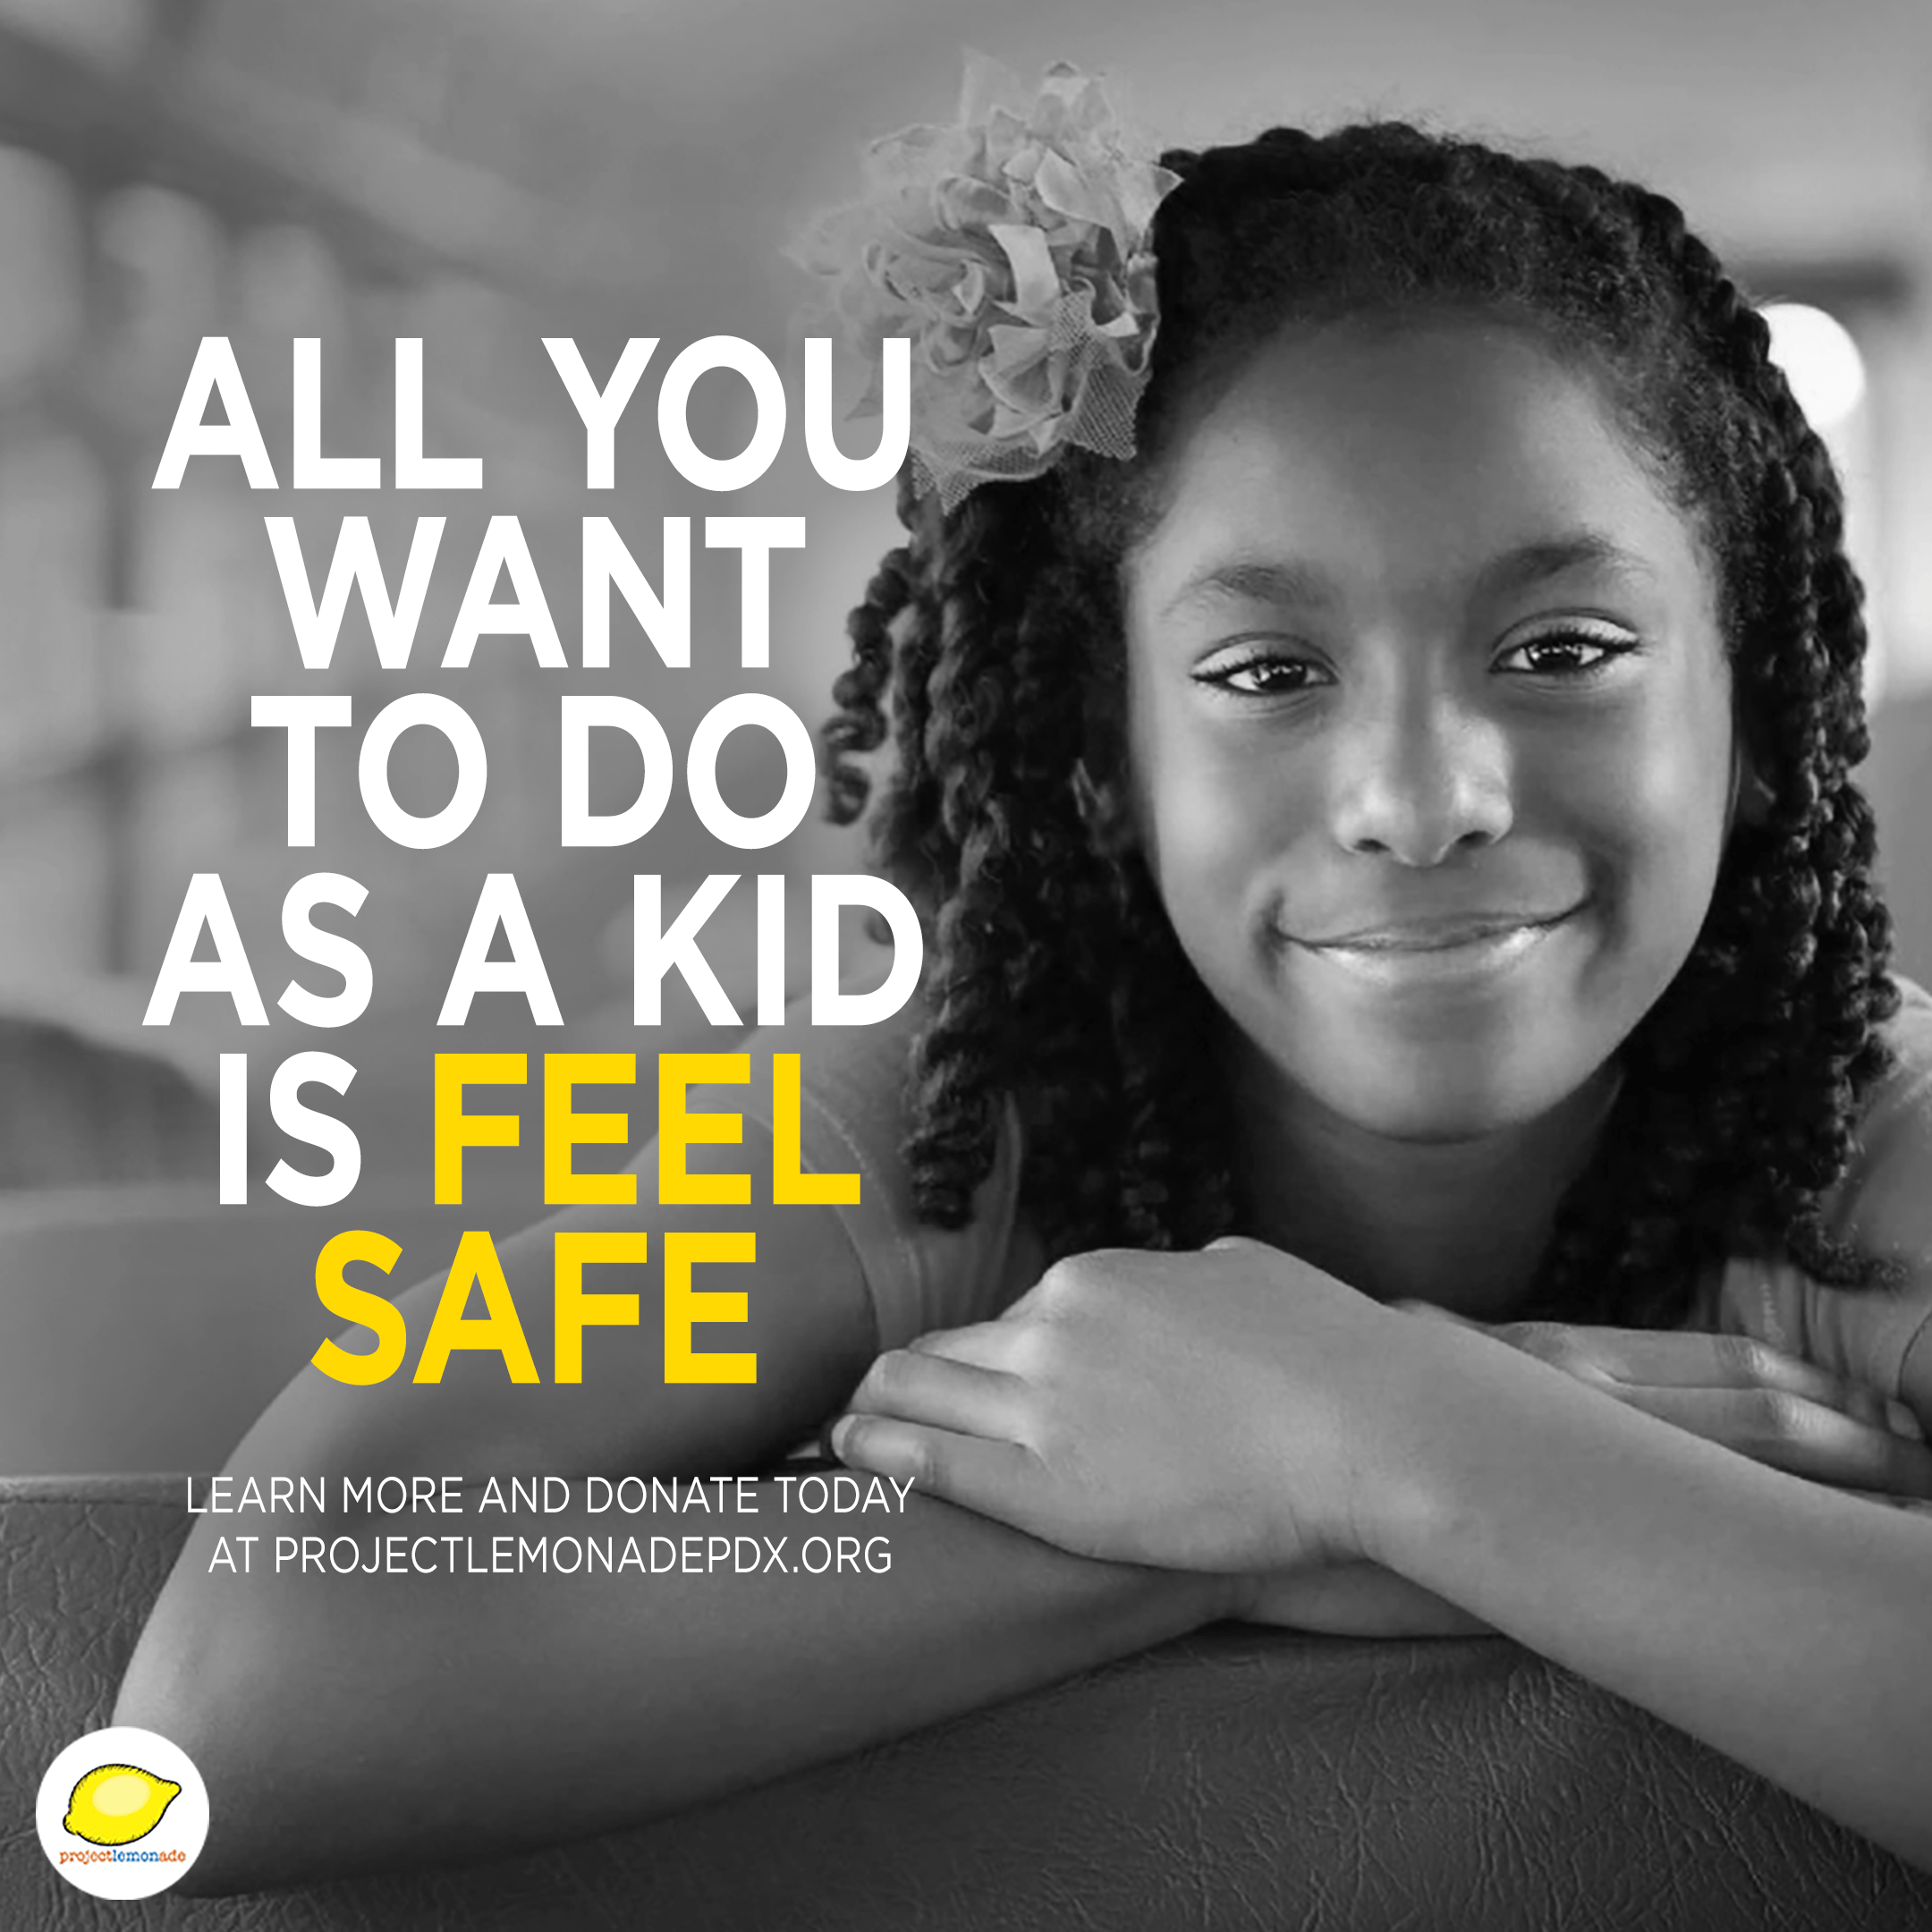 """Black female student smiling from a school bus with text, """"All you want to do as a kid is feel safe"""" during National Foster Care Month 2020 (NFCM2020)."""